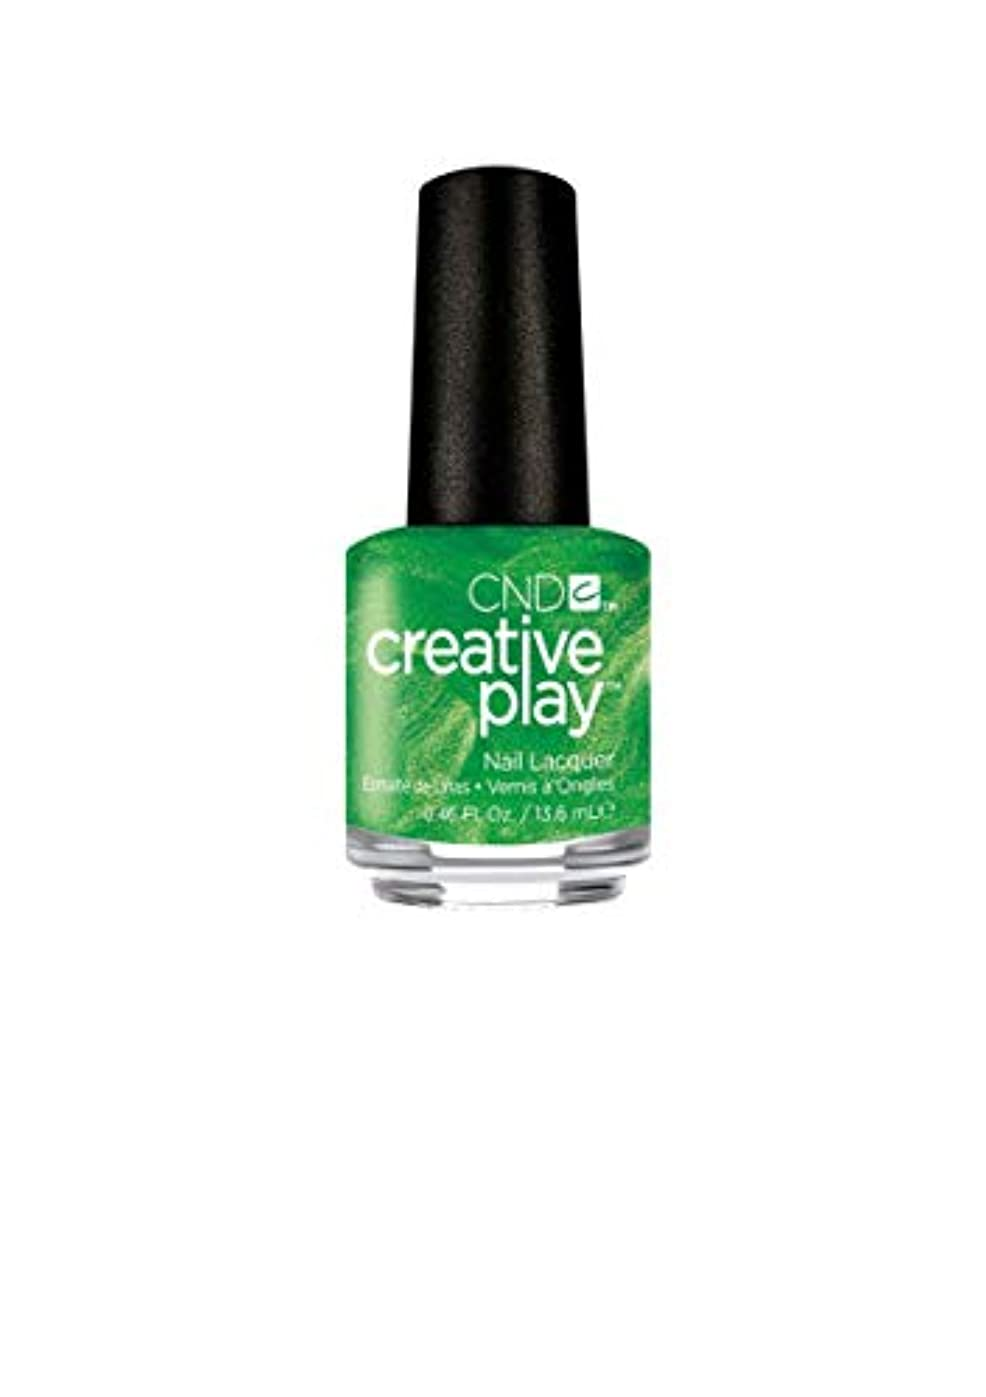 CND Creative Play Lacquer - Love it or Leaf it - 0.46oz / 13.6ml